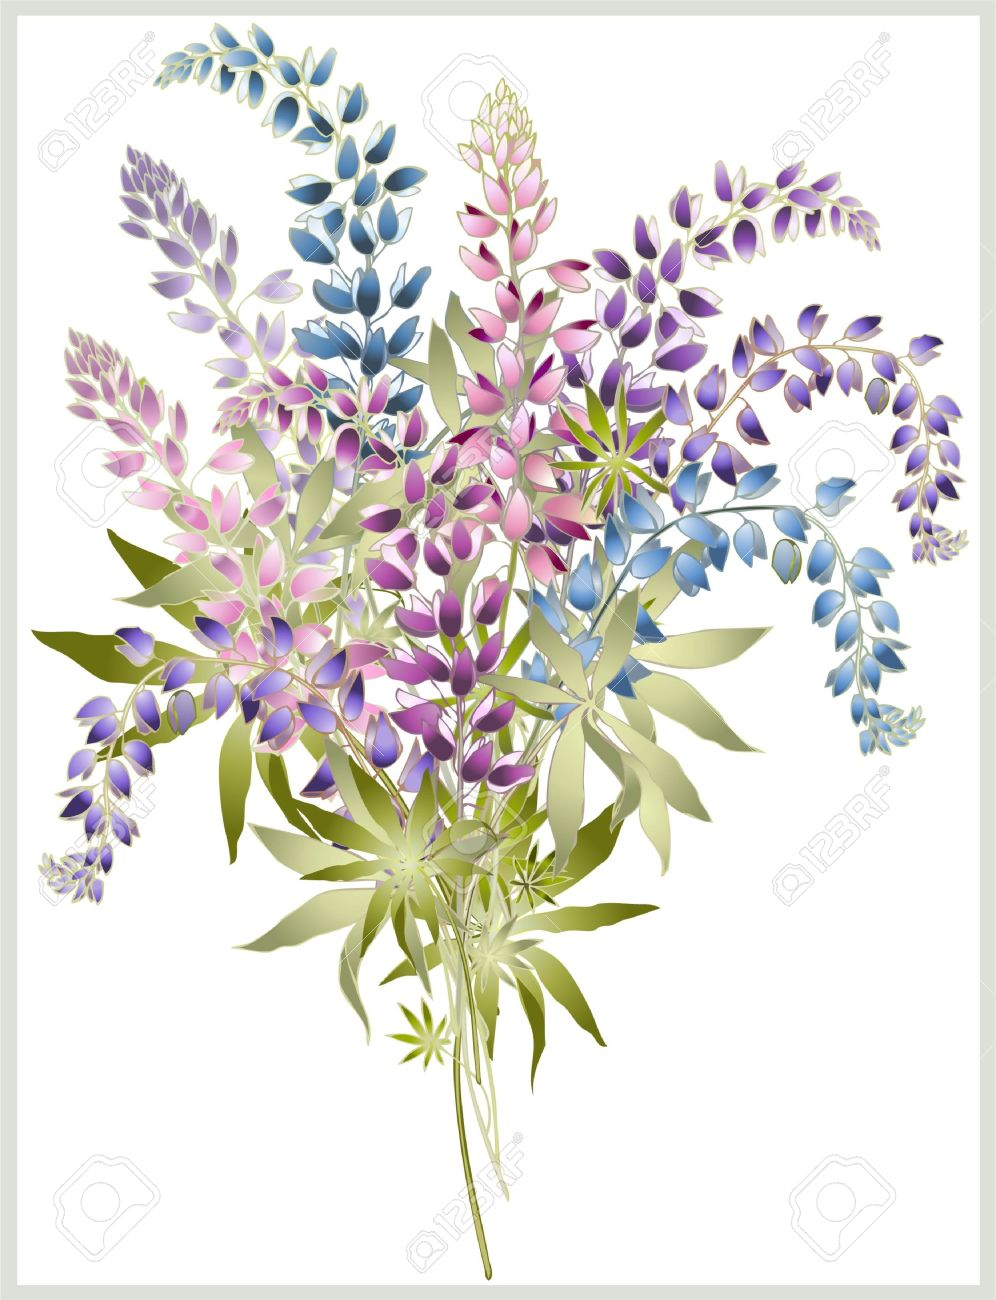 Lupine clipart #8, Download drawings